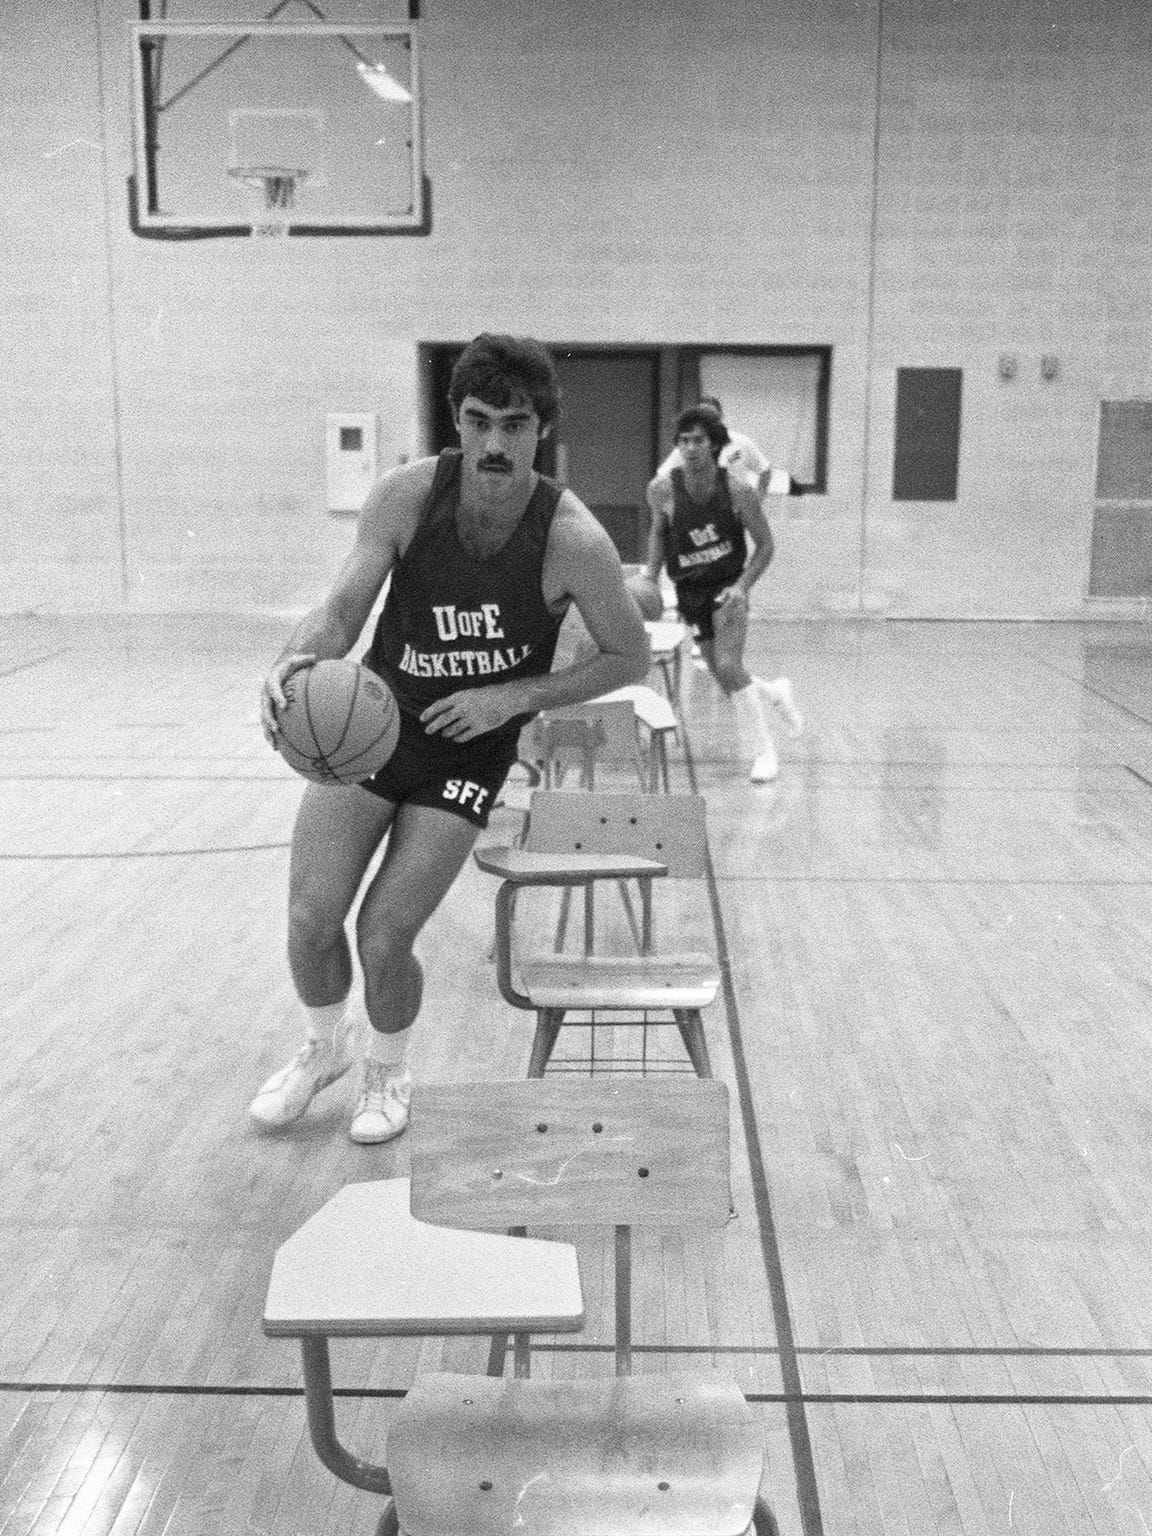 Bryan Taylor, a member of the University of Evansville's Purple Aces men's basketball team and a Tell City High School standout, participates in a team drill in October of 1977. The team was killed in a plane crash on Dec. 13, 1977. The gym in Tell City is now named for Taylor.